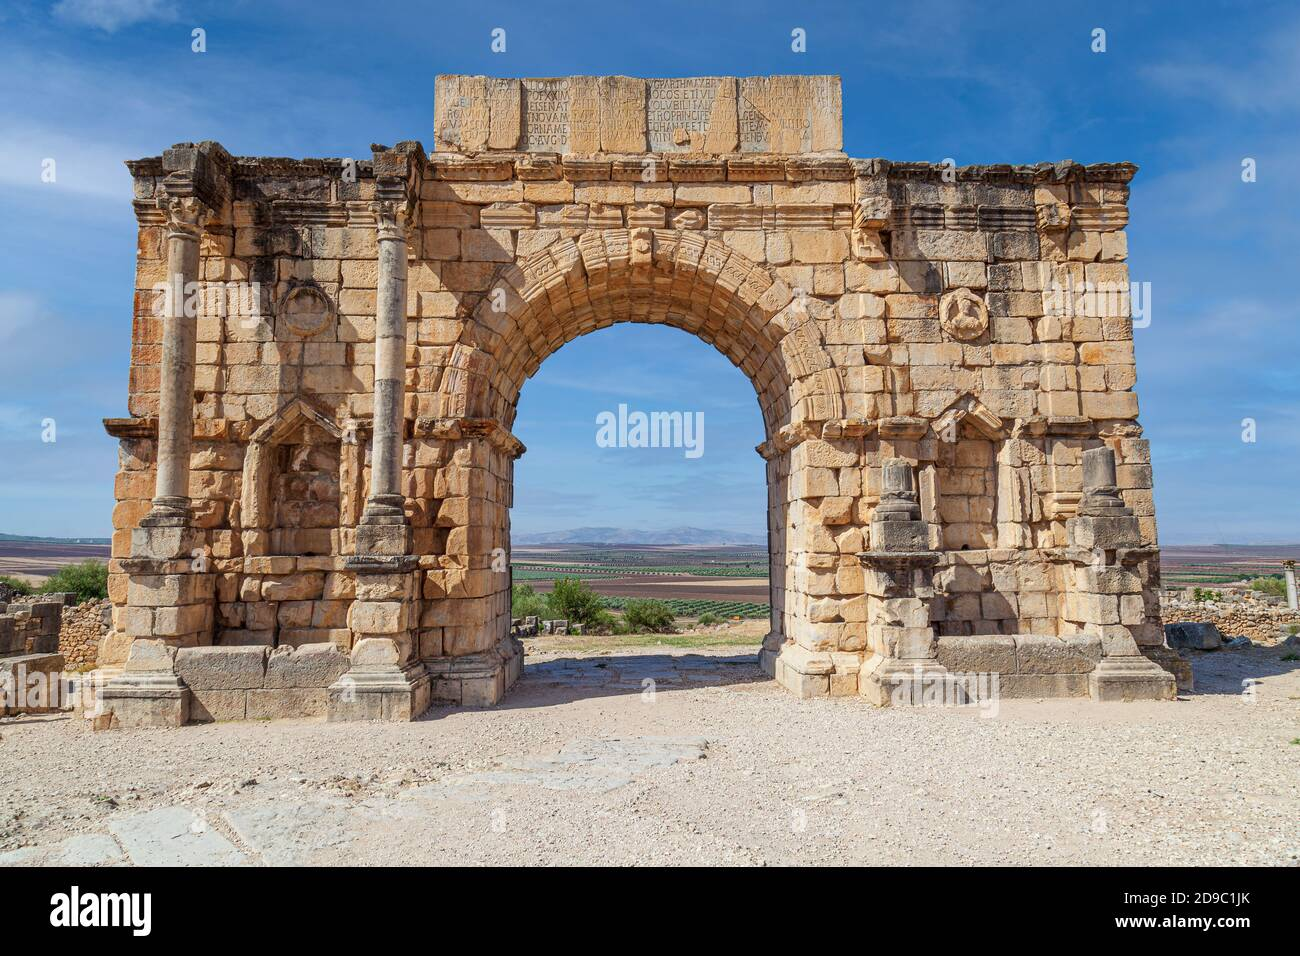 The Triumphal Arch devoted to Emperor Caracalla at the 3rd Century Ruins at Volubilis morocco Stock Photo